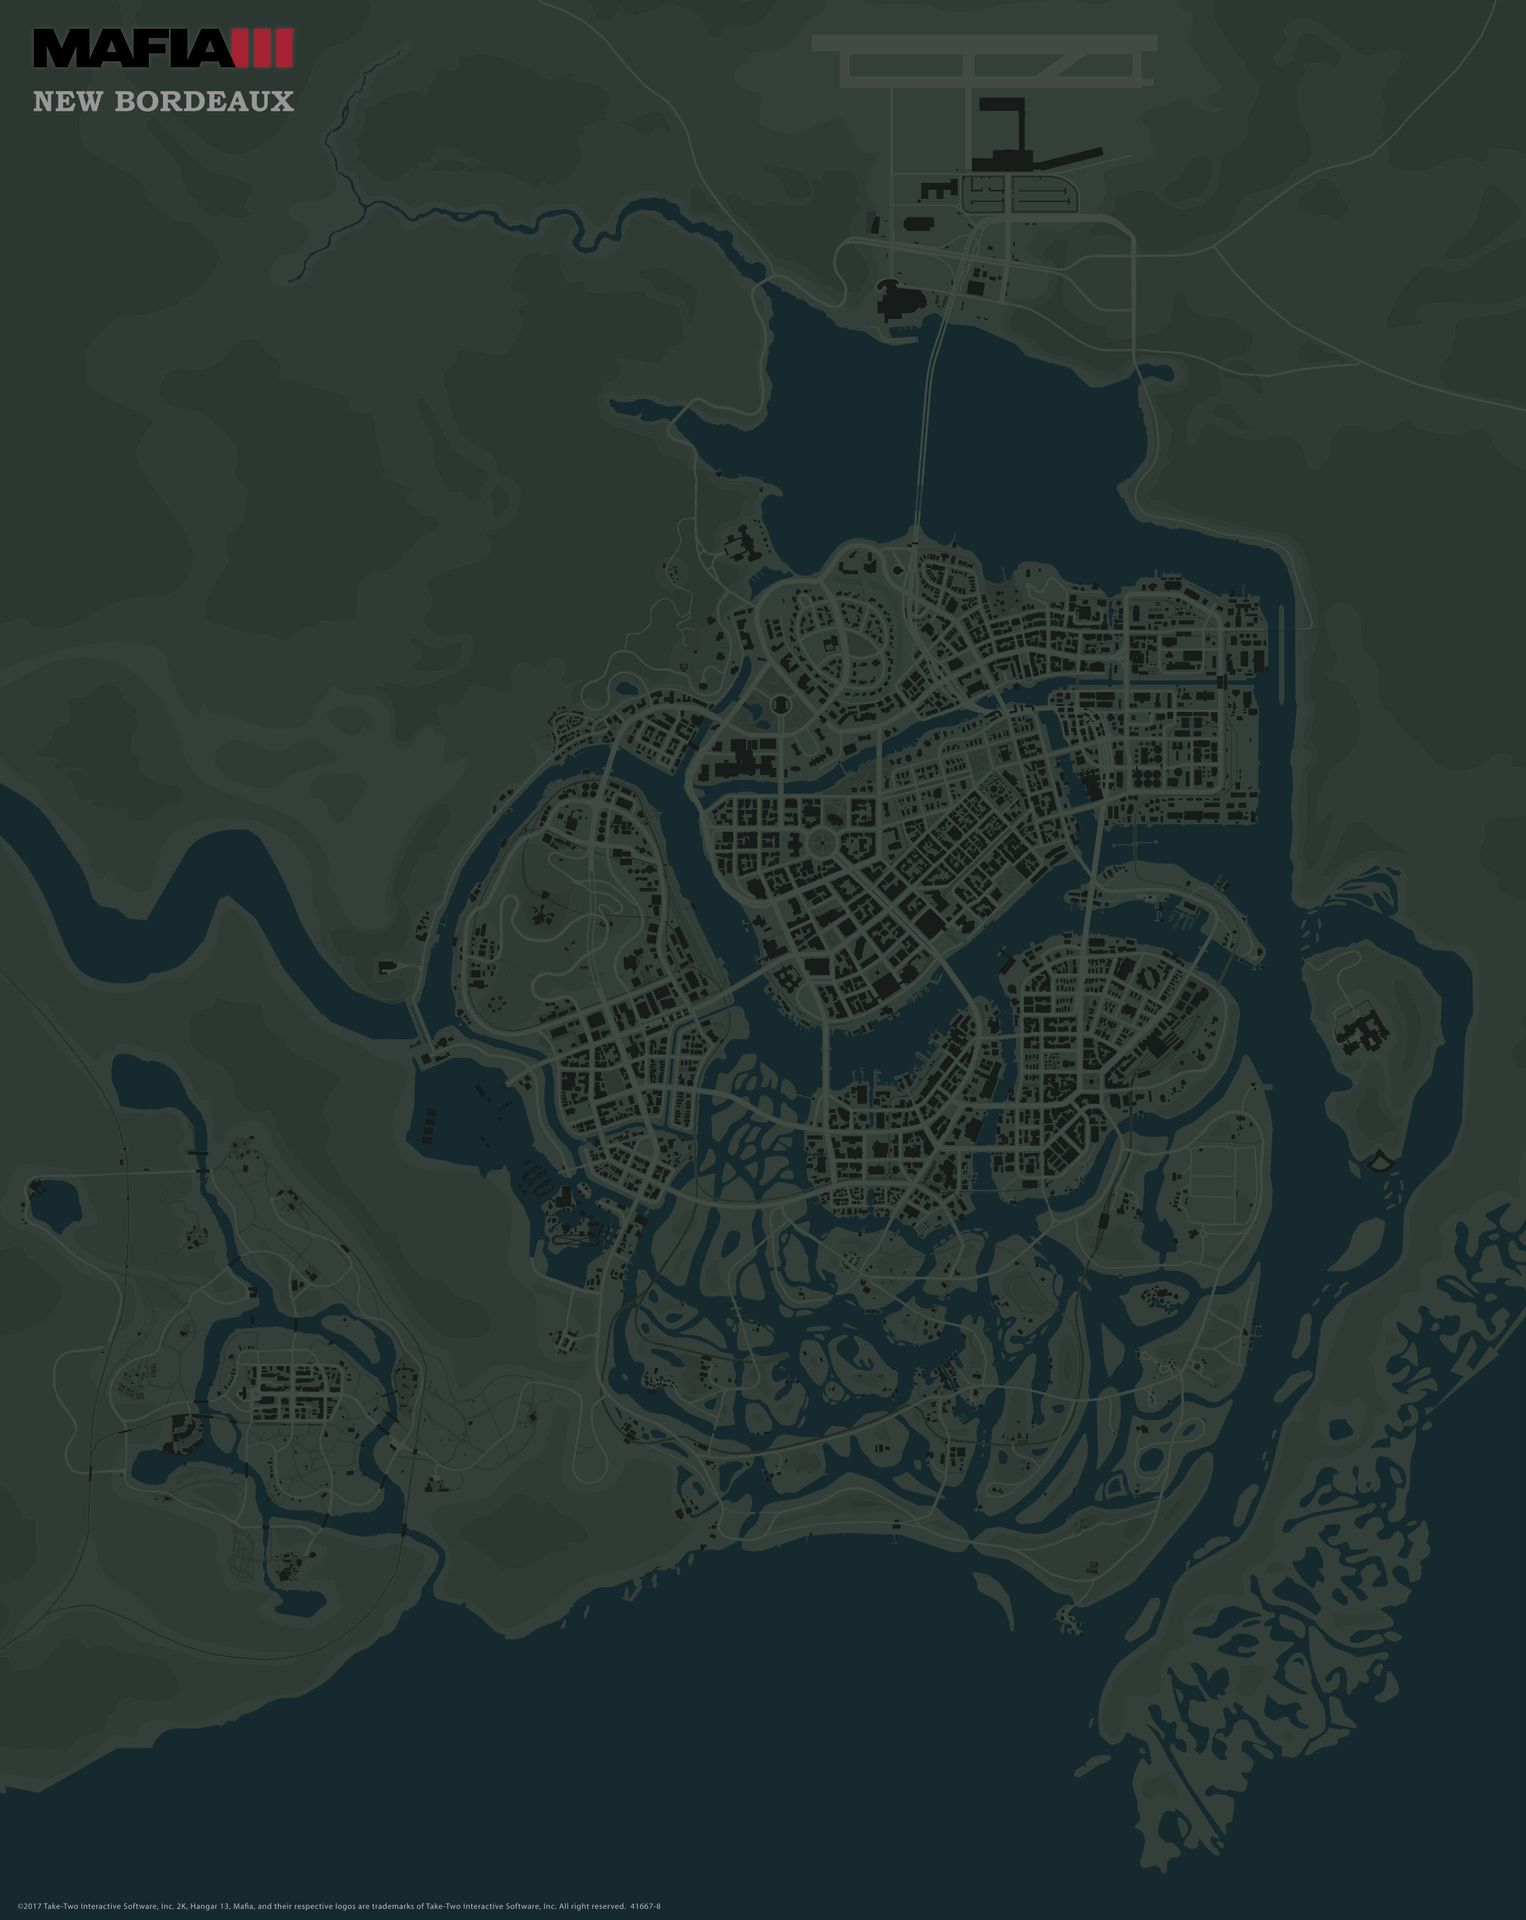 Gamasutra nathan cheevers blog mafia 3s world maps game ui an updated ui map from the game gumiabroncs Choice Image